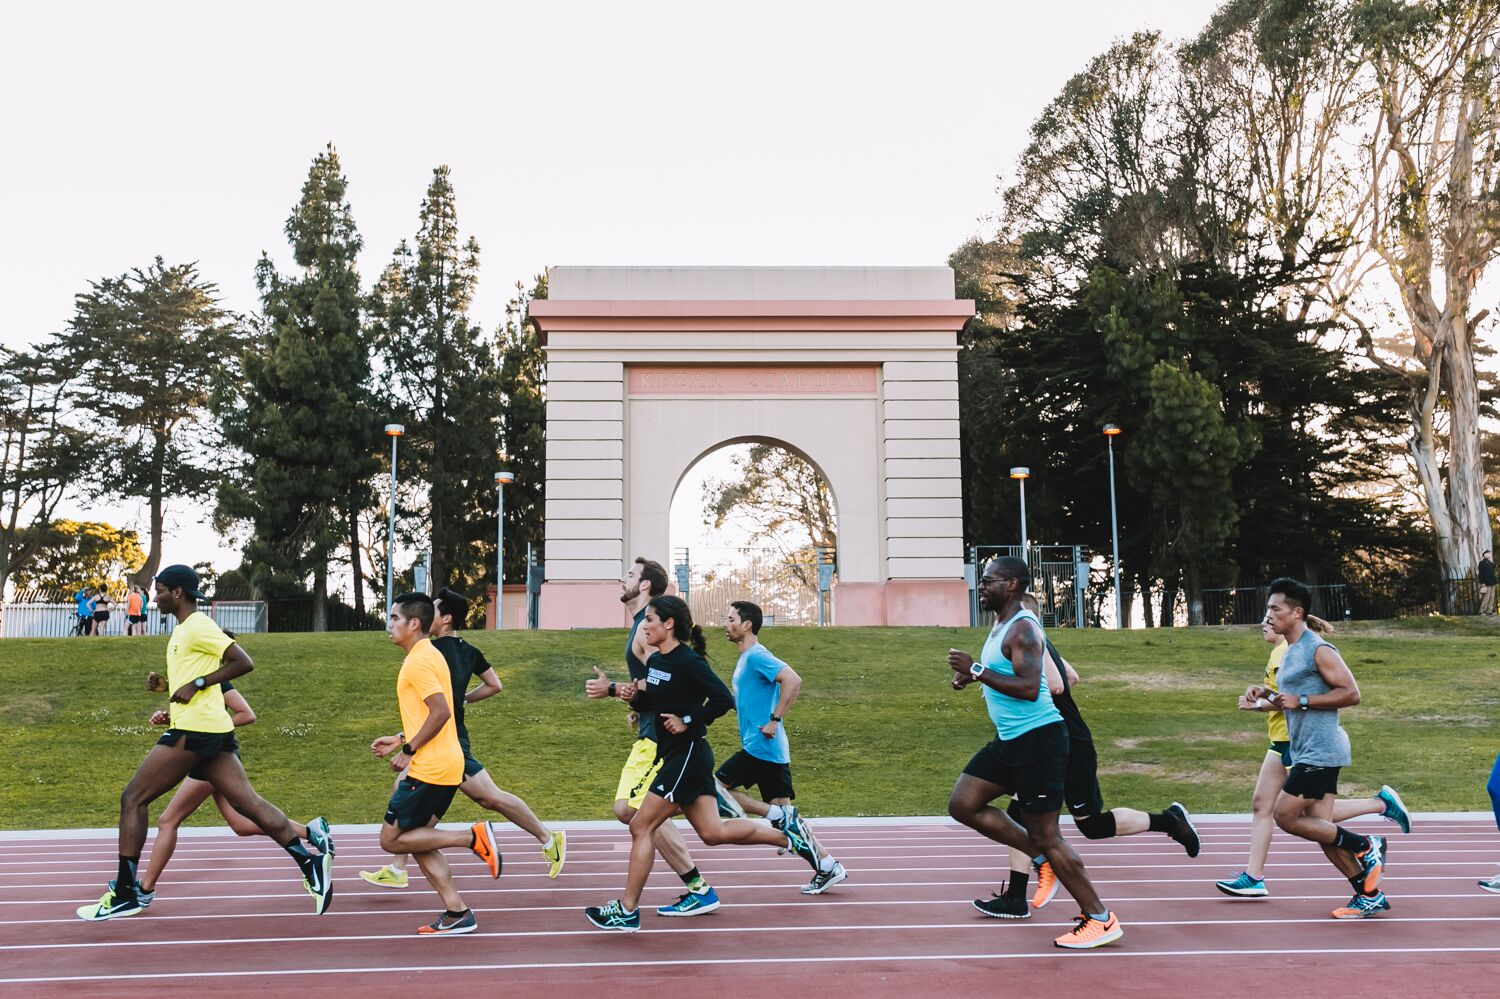 Nike Run Club track workout, July 2016, photo credit: Spencer Cotton, Nike Run Club IIRC